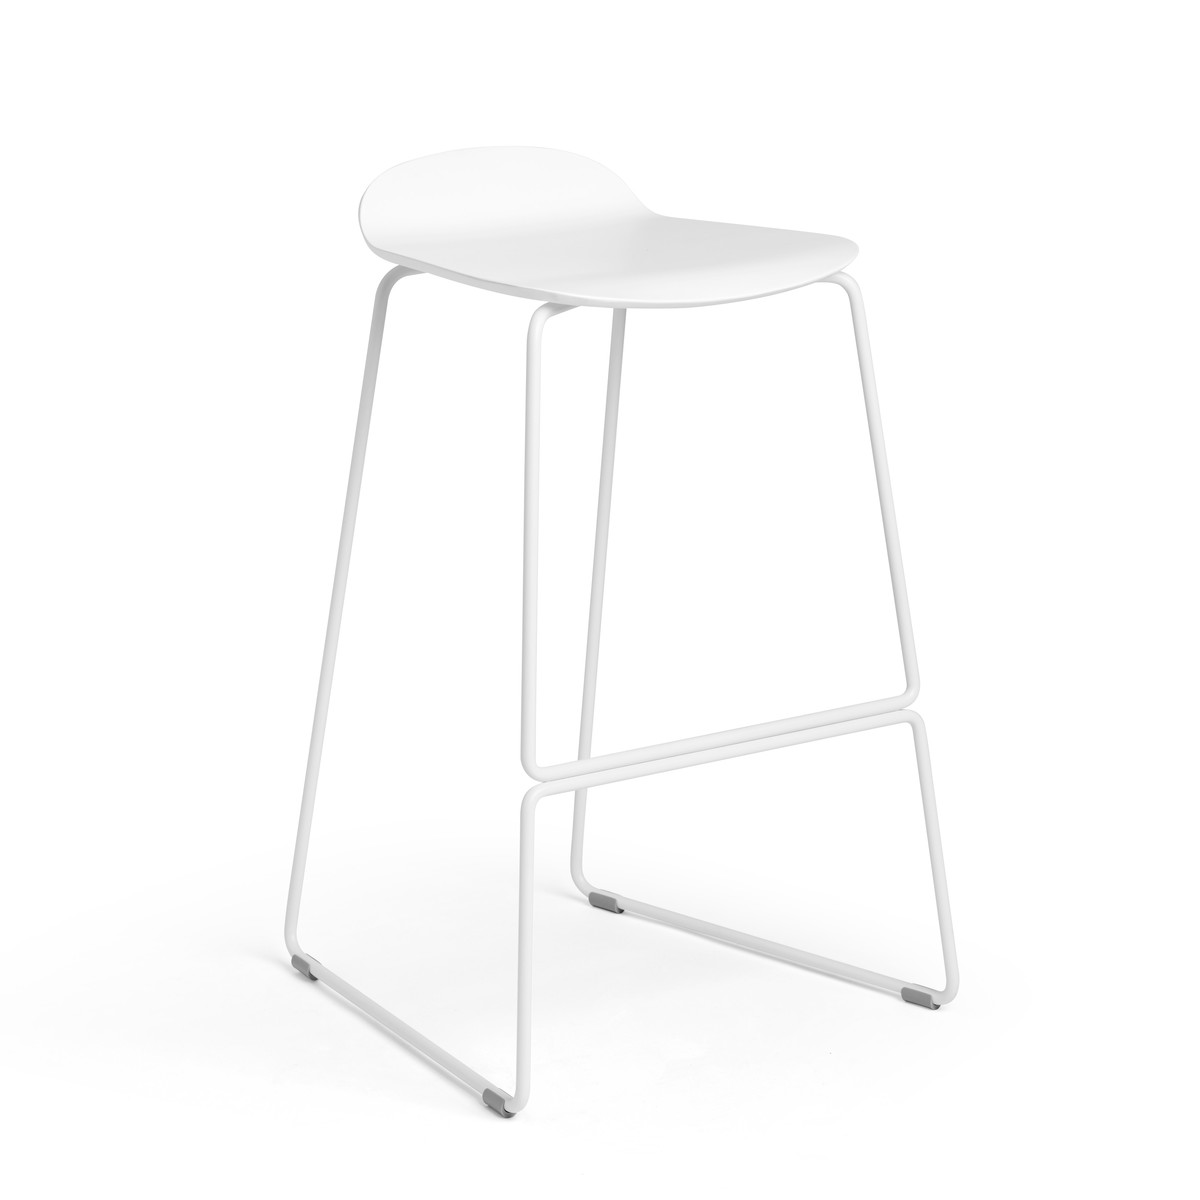 White Upbeat Stool | Modern Office Furniture | Poppin